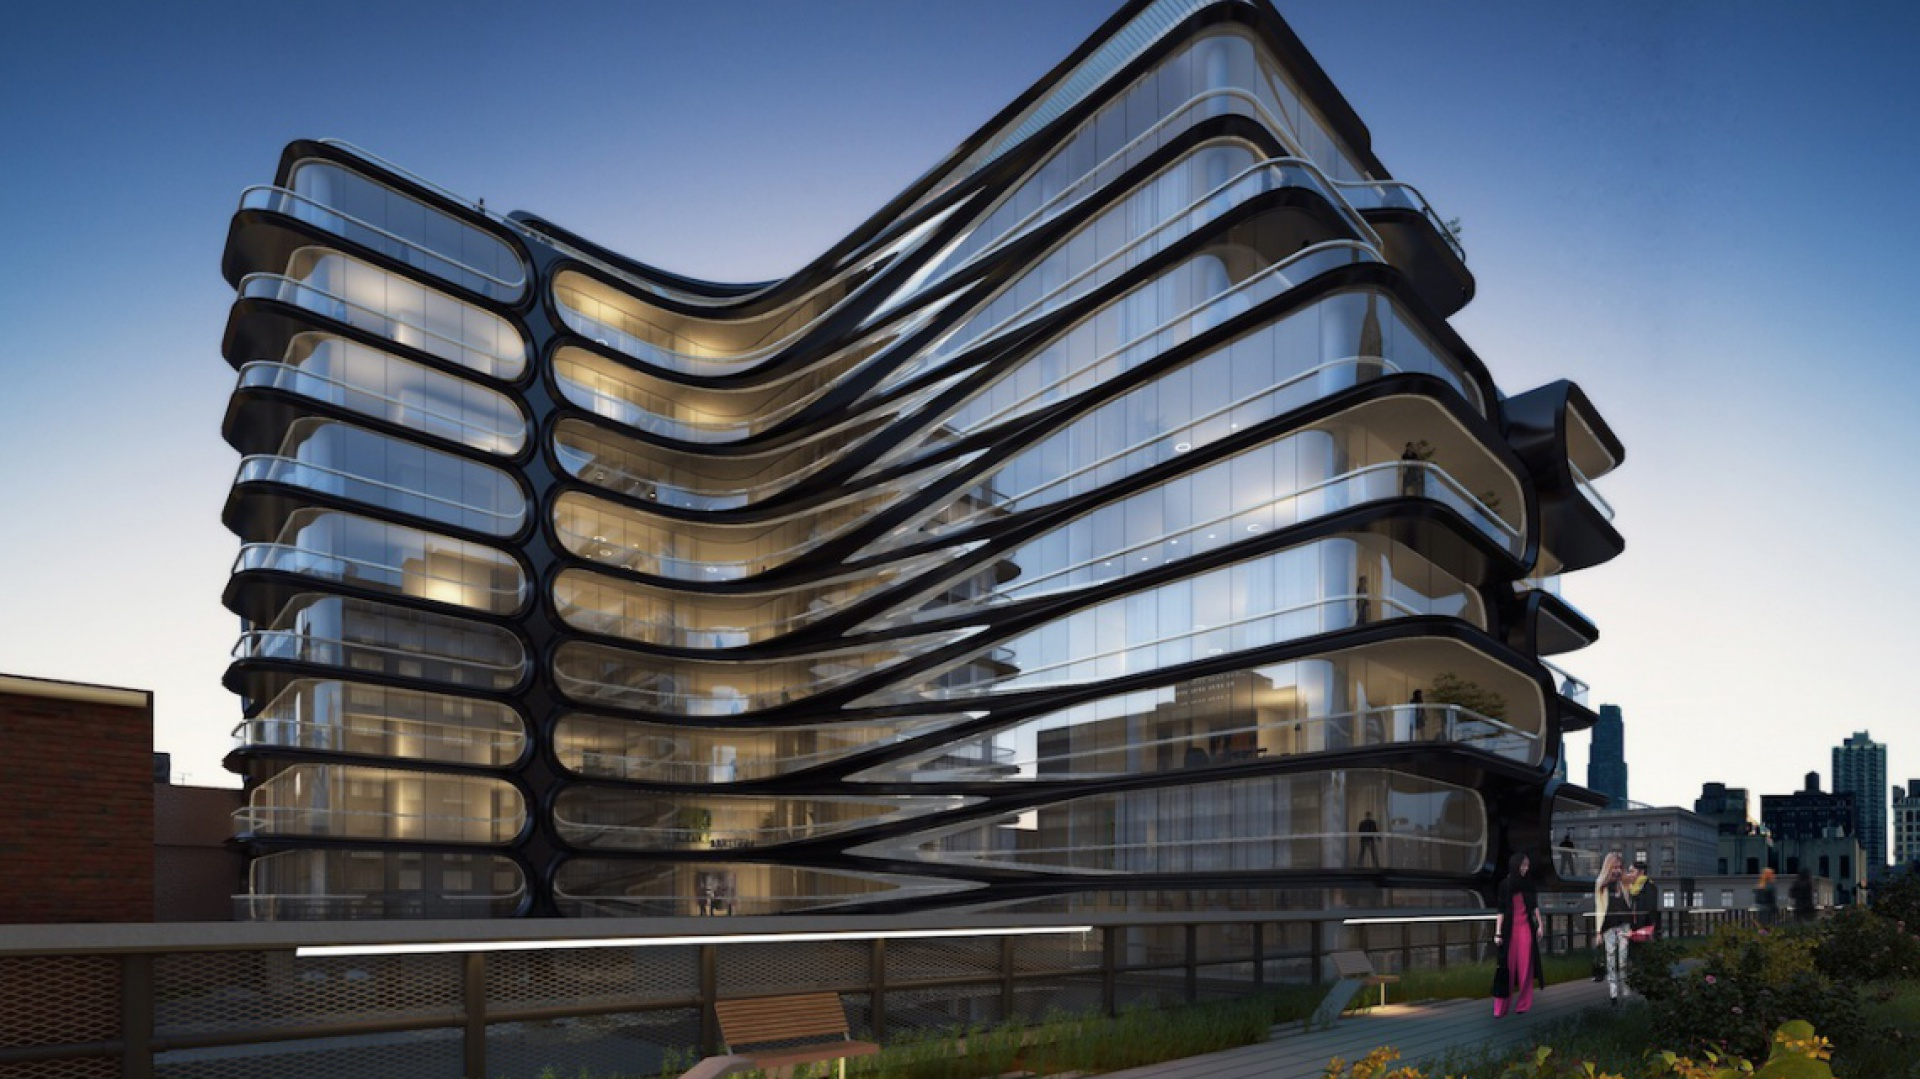 Fot. Zaha Hadid Architects